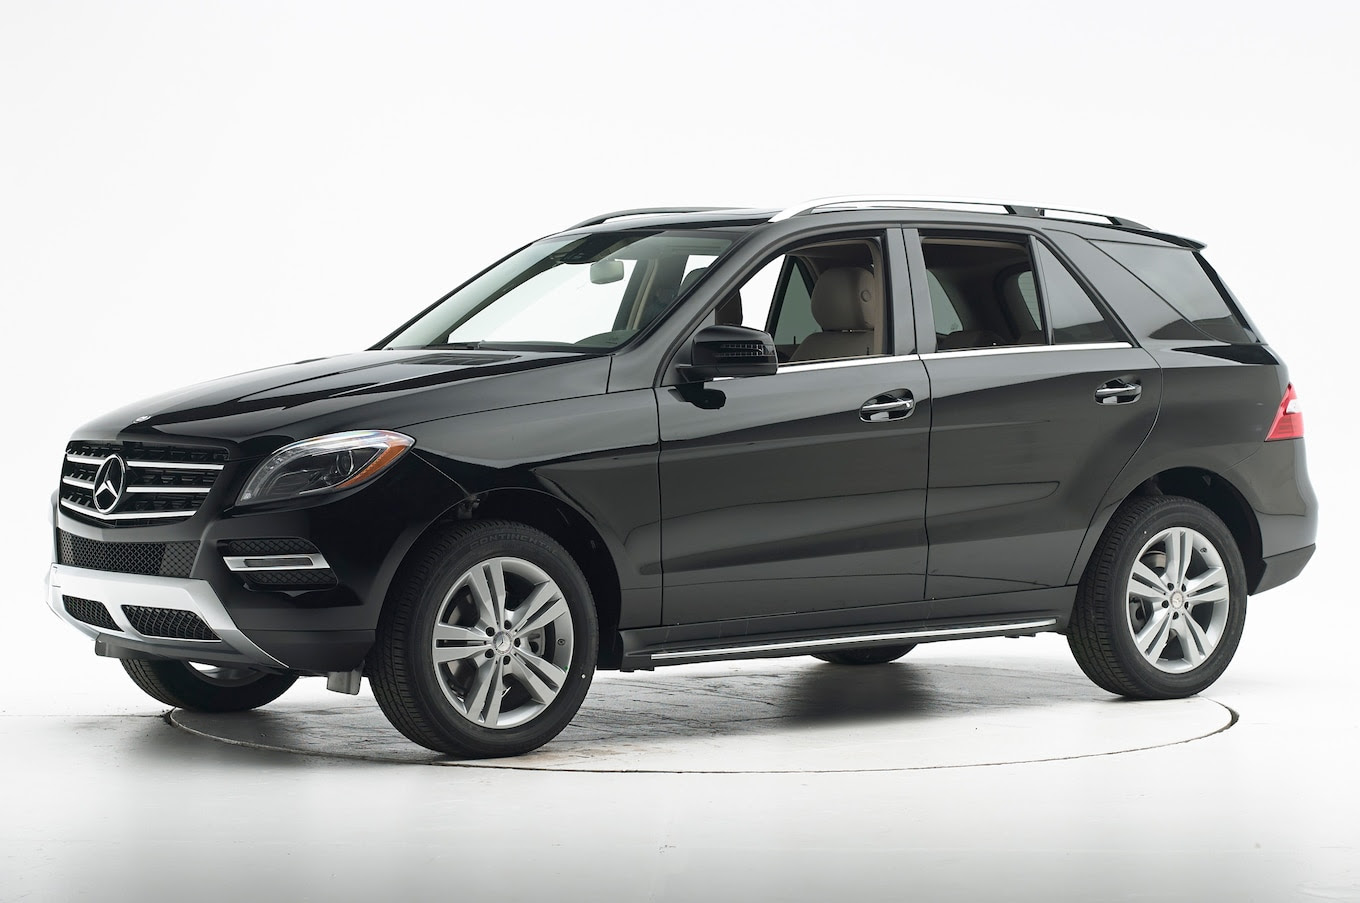 2014 Mercedes-Benz M-Class Awarded IIHS Top Safety Pick+